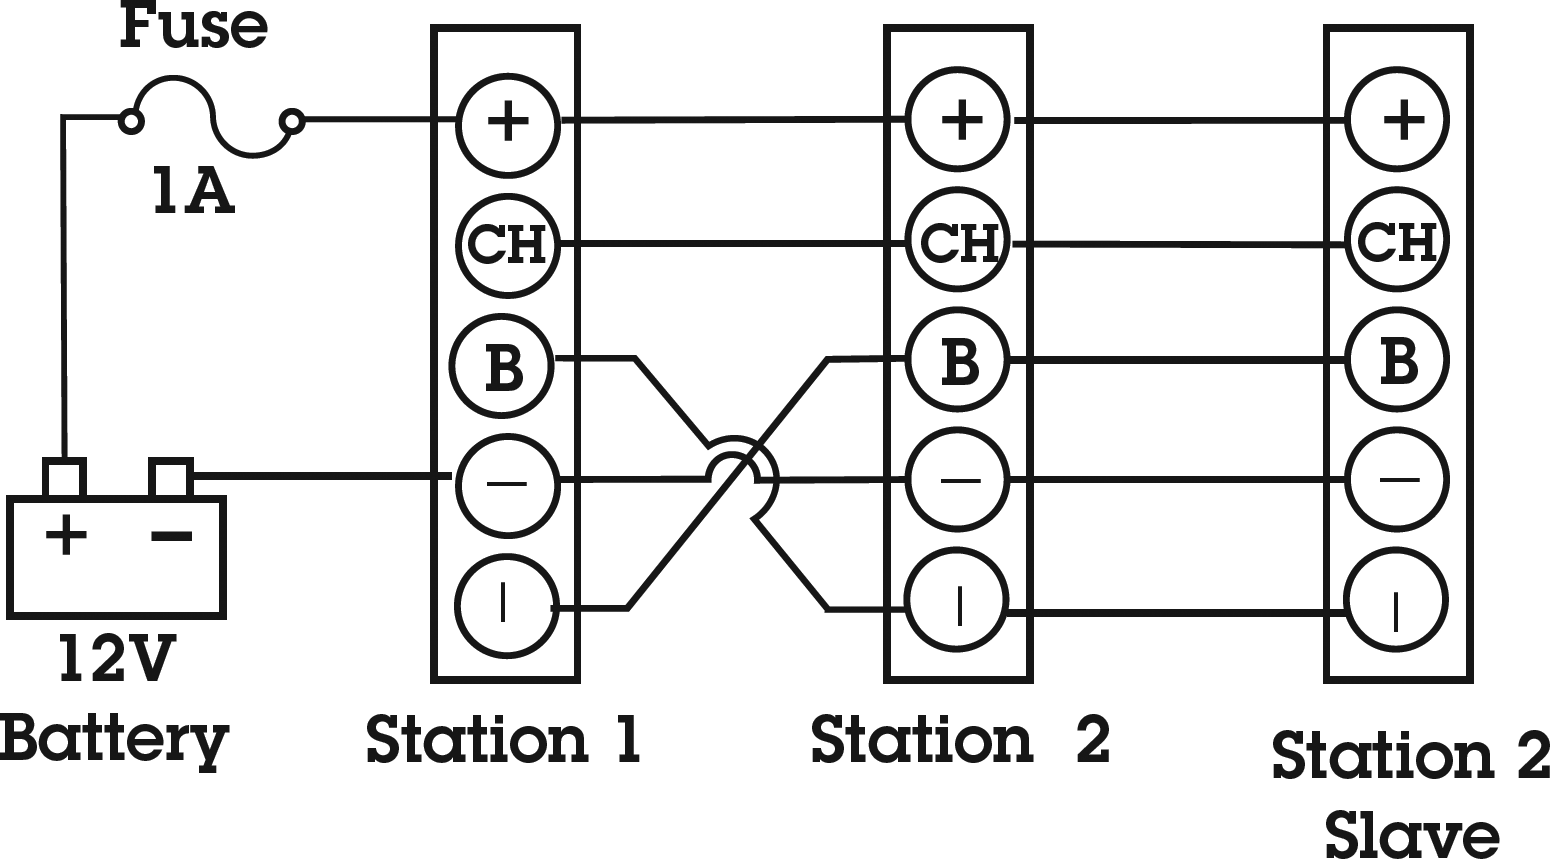 Wiring Diagram For Lift Station